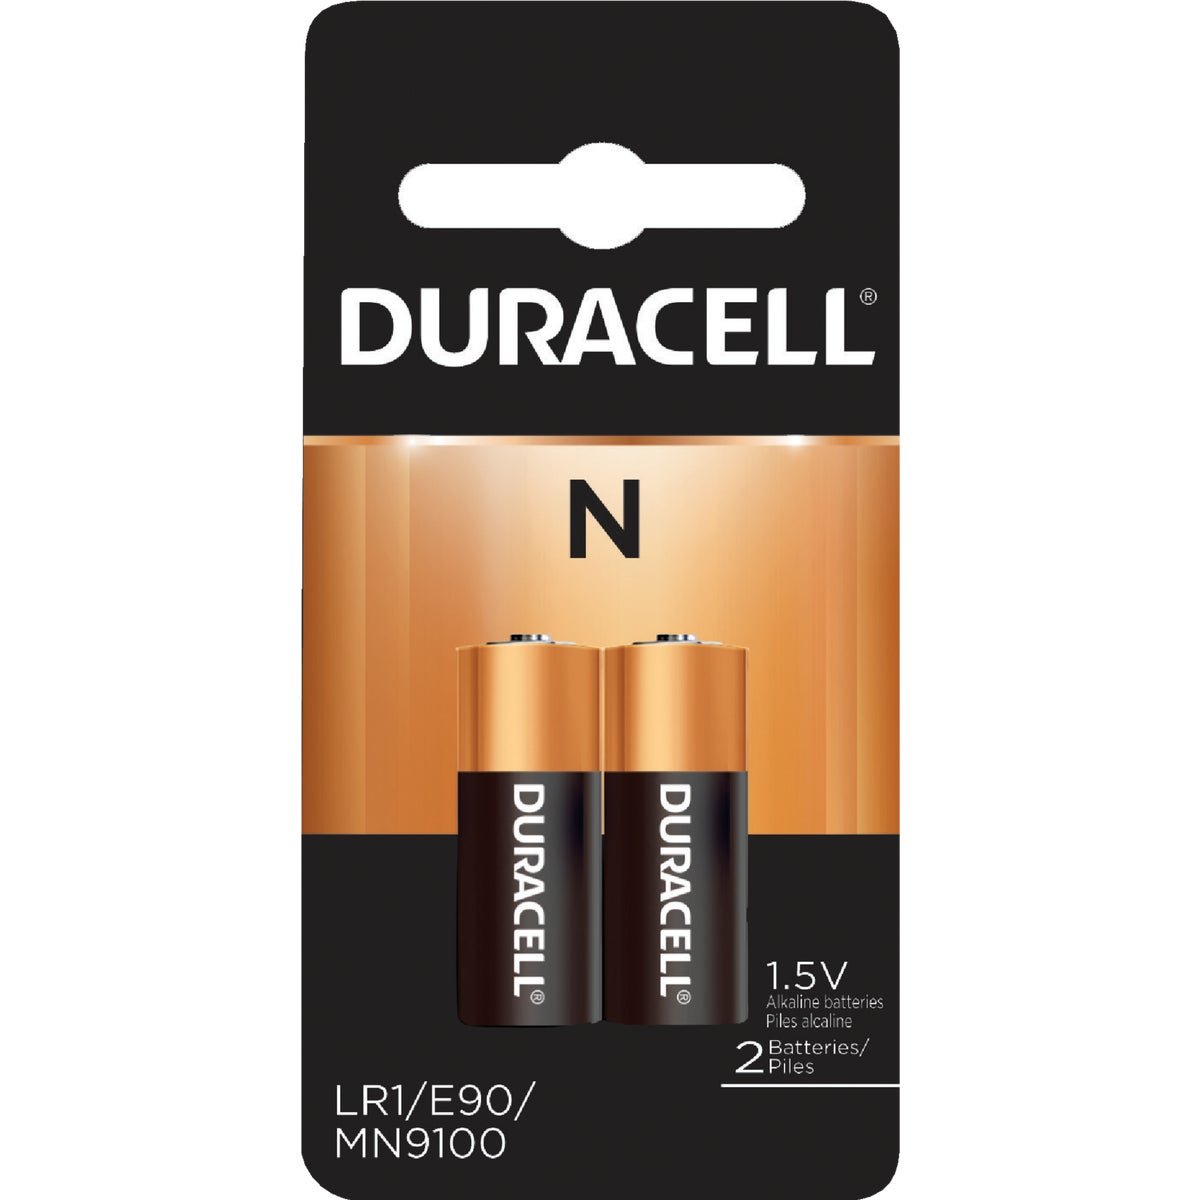 MN9100 1.5V MED BATTERY - 28587 by P & G  Duracell